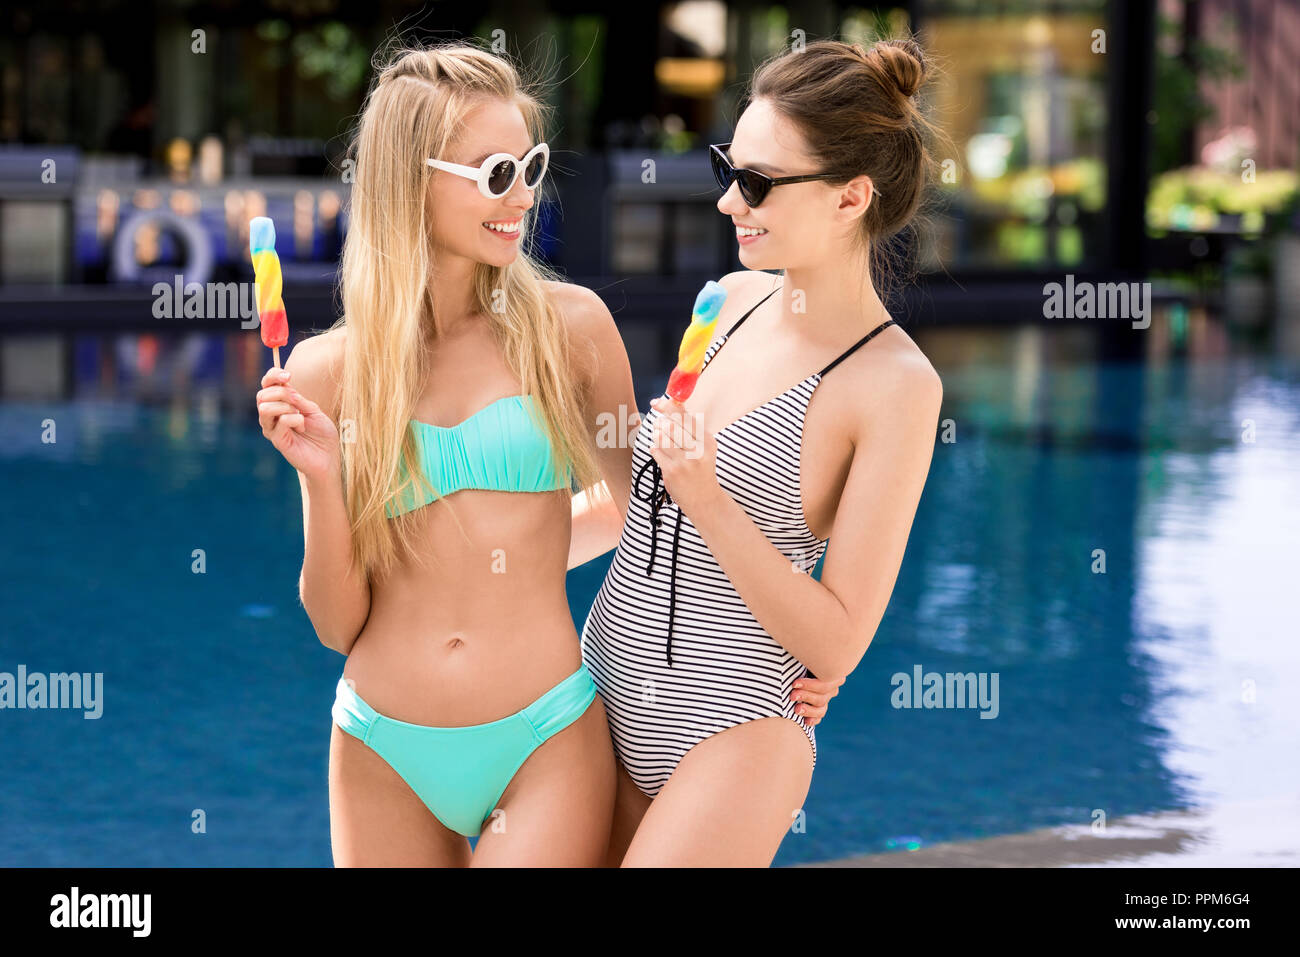 happy young embracing women in swimsuit and bikini with popsicles at poolside Stock Photo